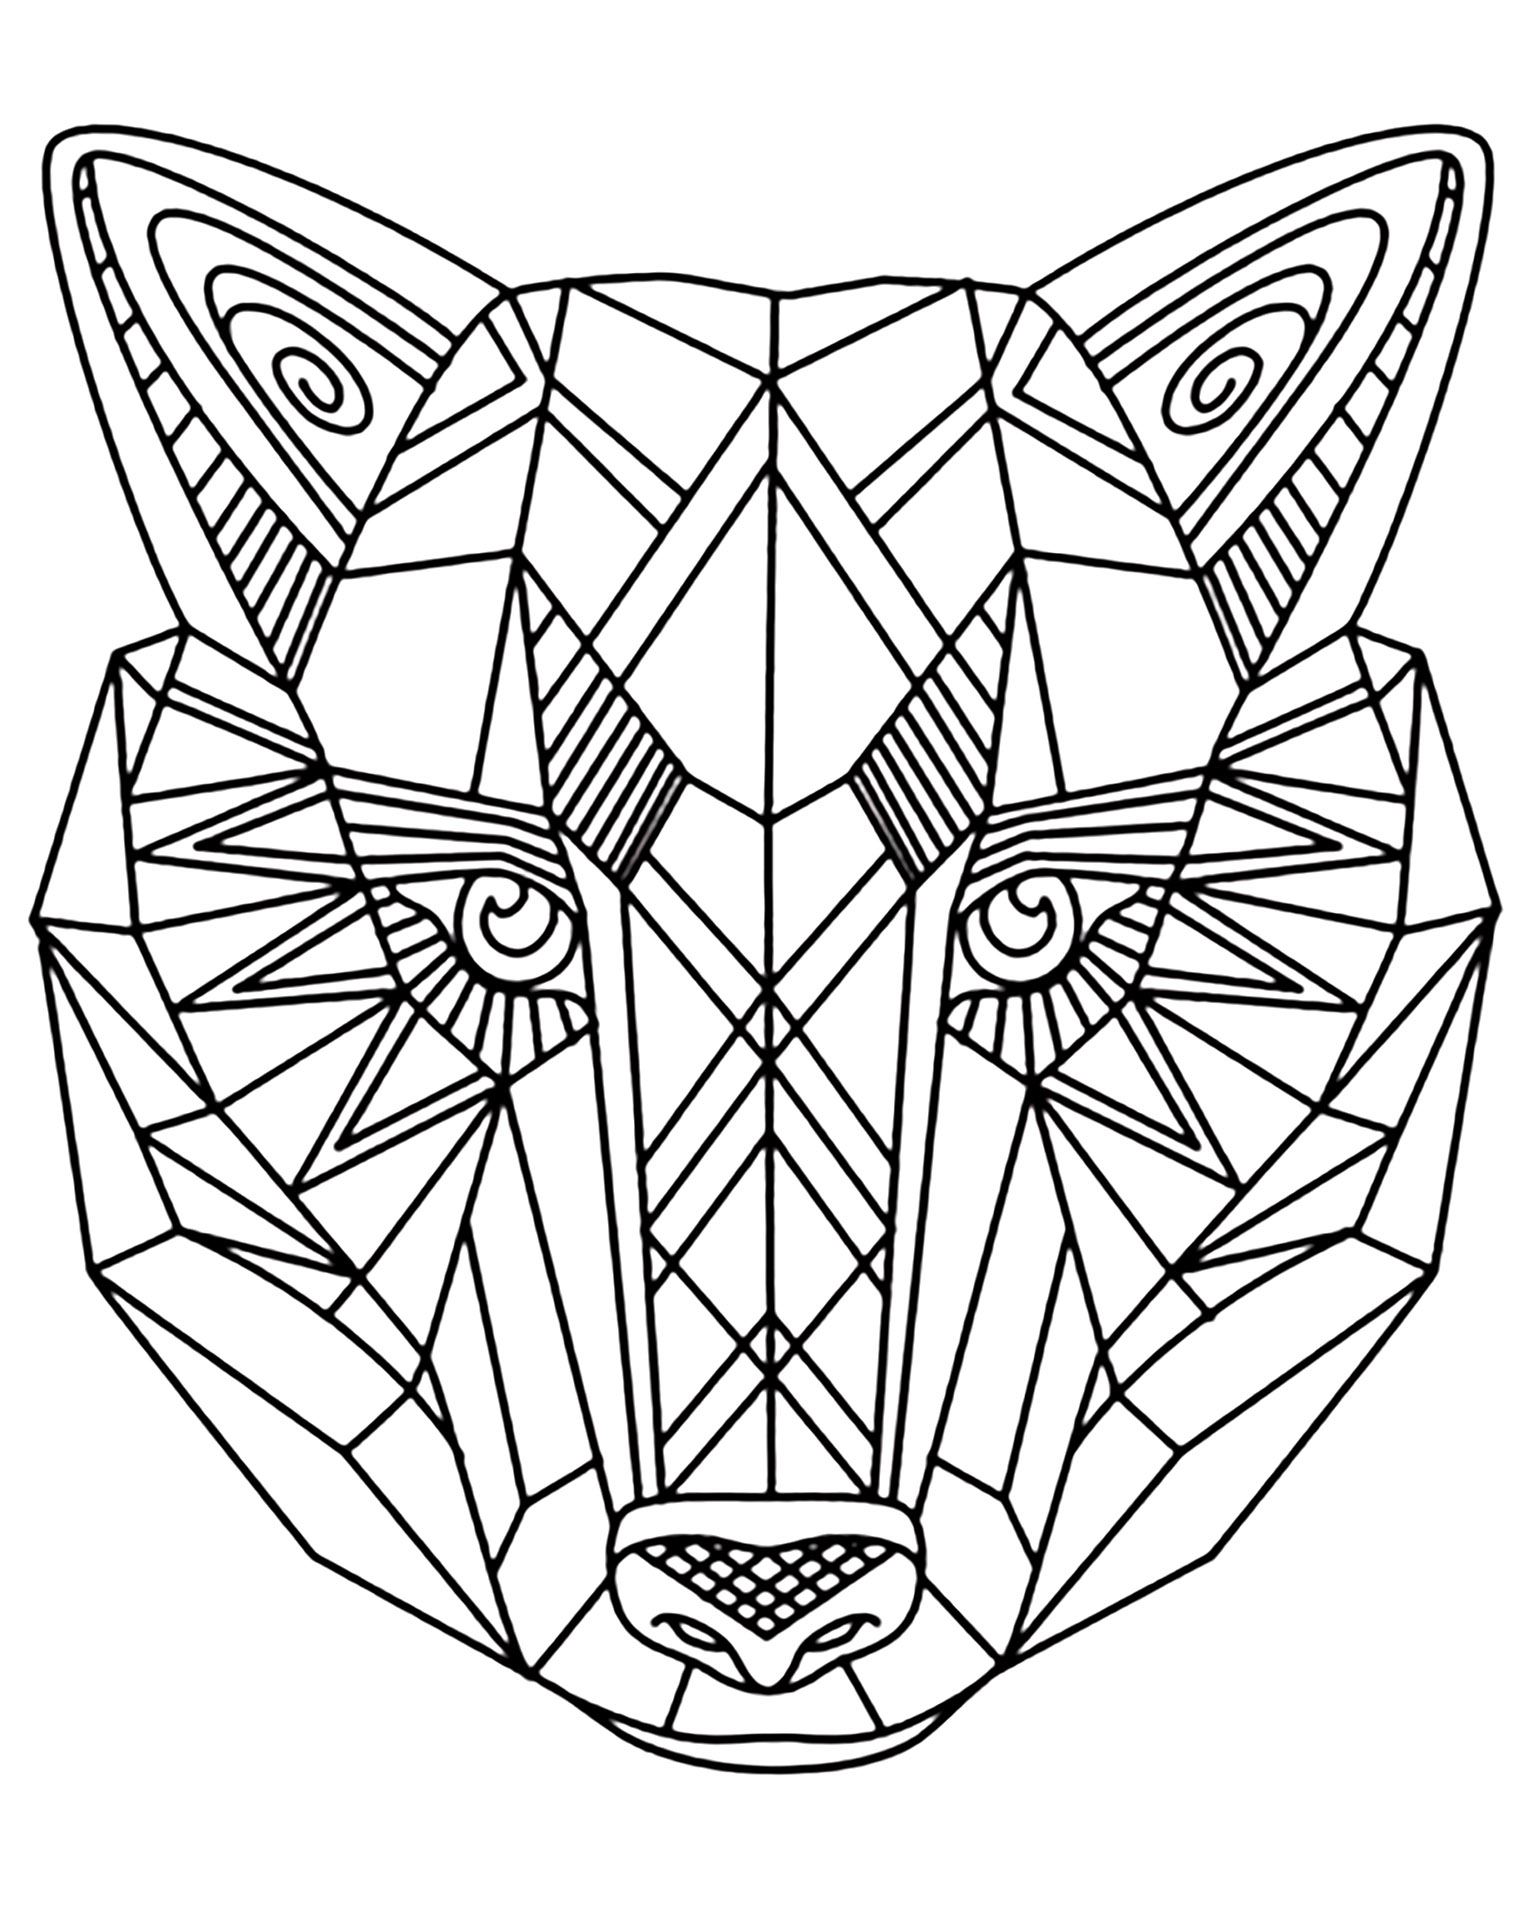 wolf 1 wolves coloring pages for adults justcolor - Wolf Coloring Pages For Adults